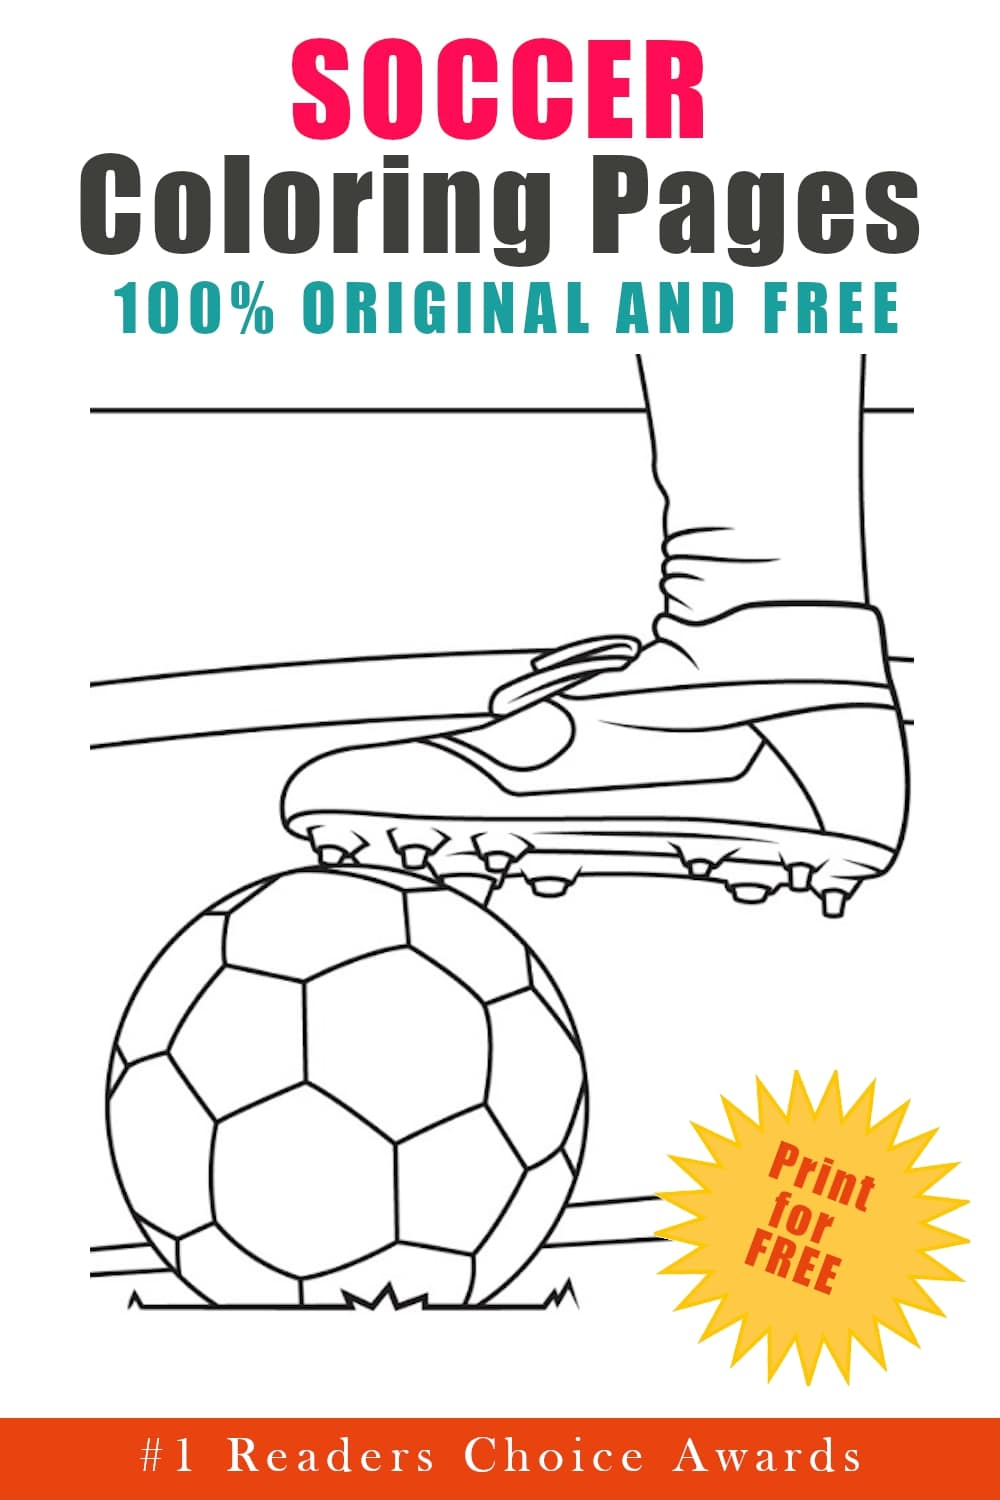 original and free soccer coloring pages